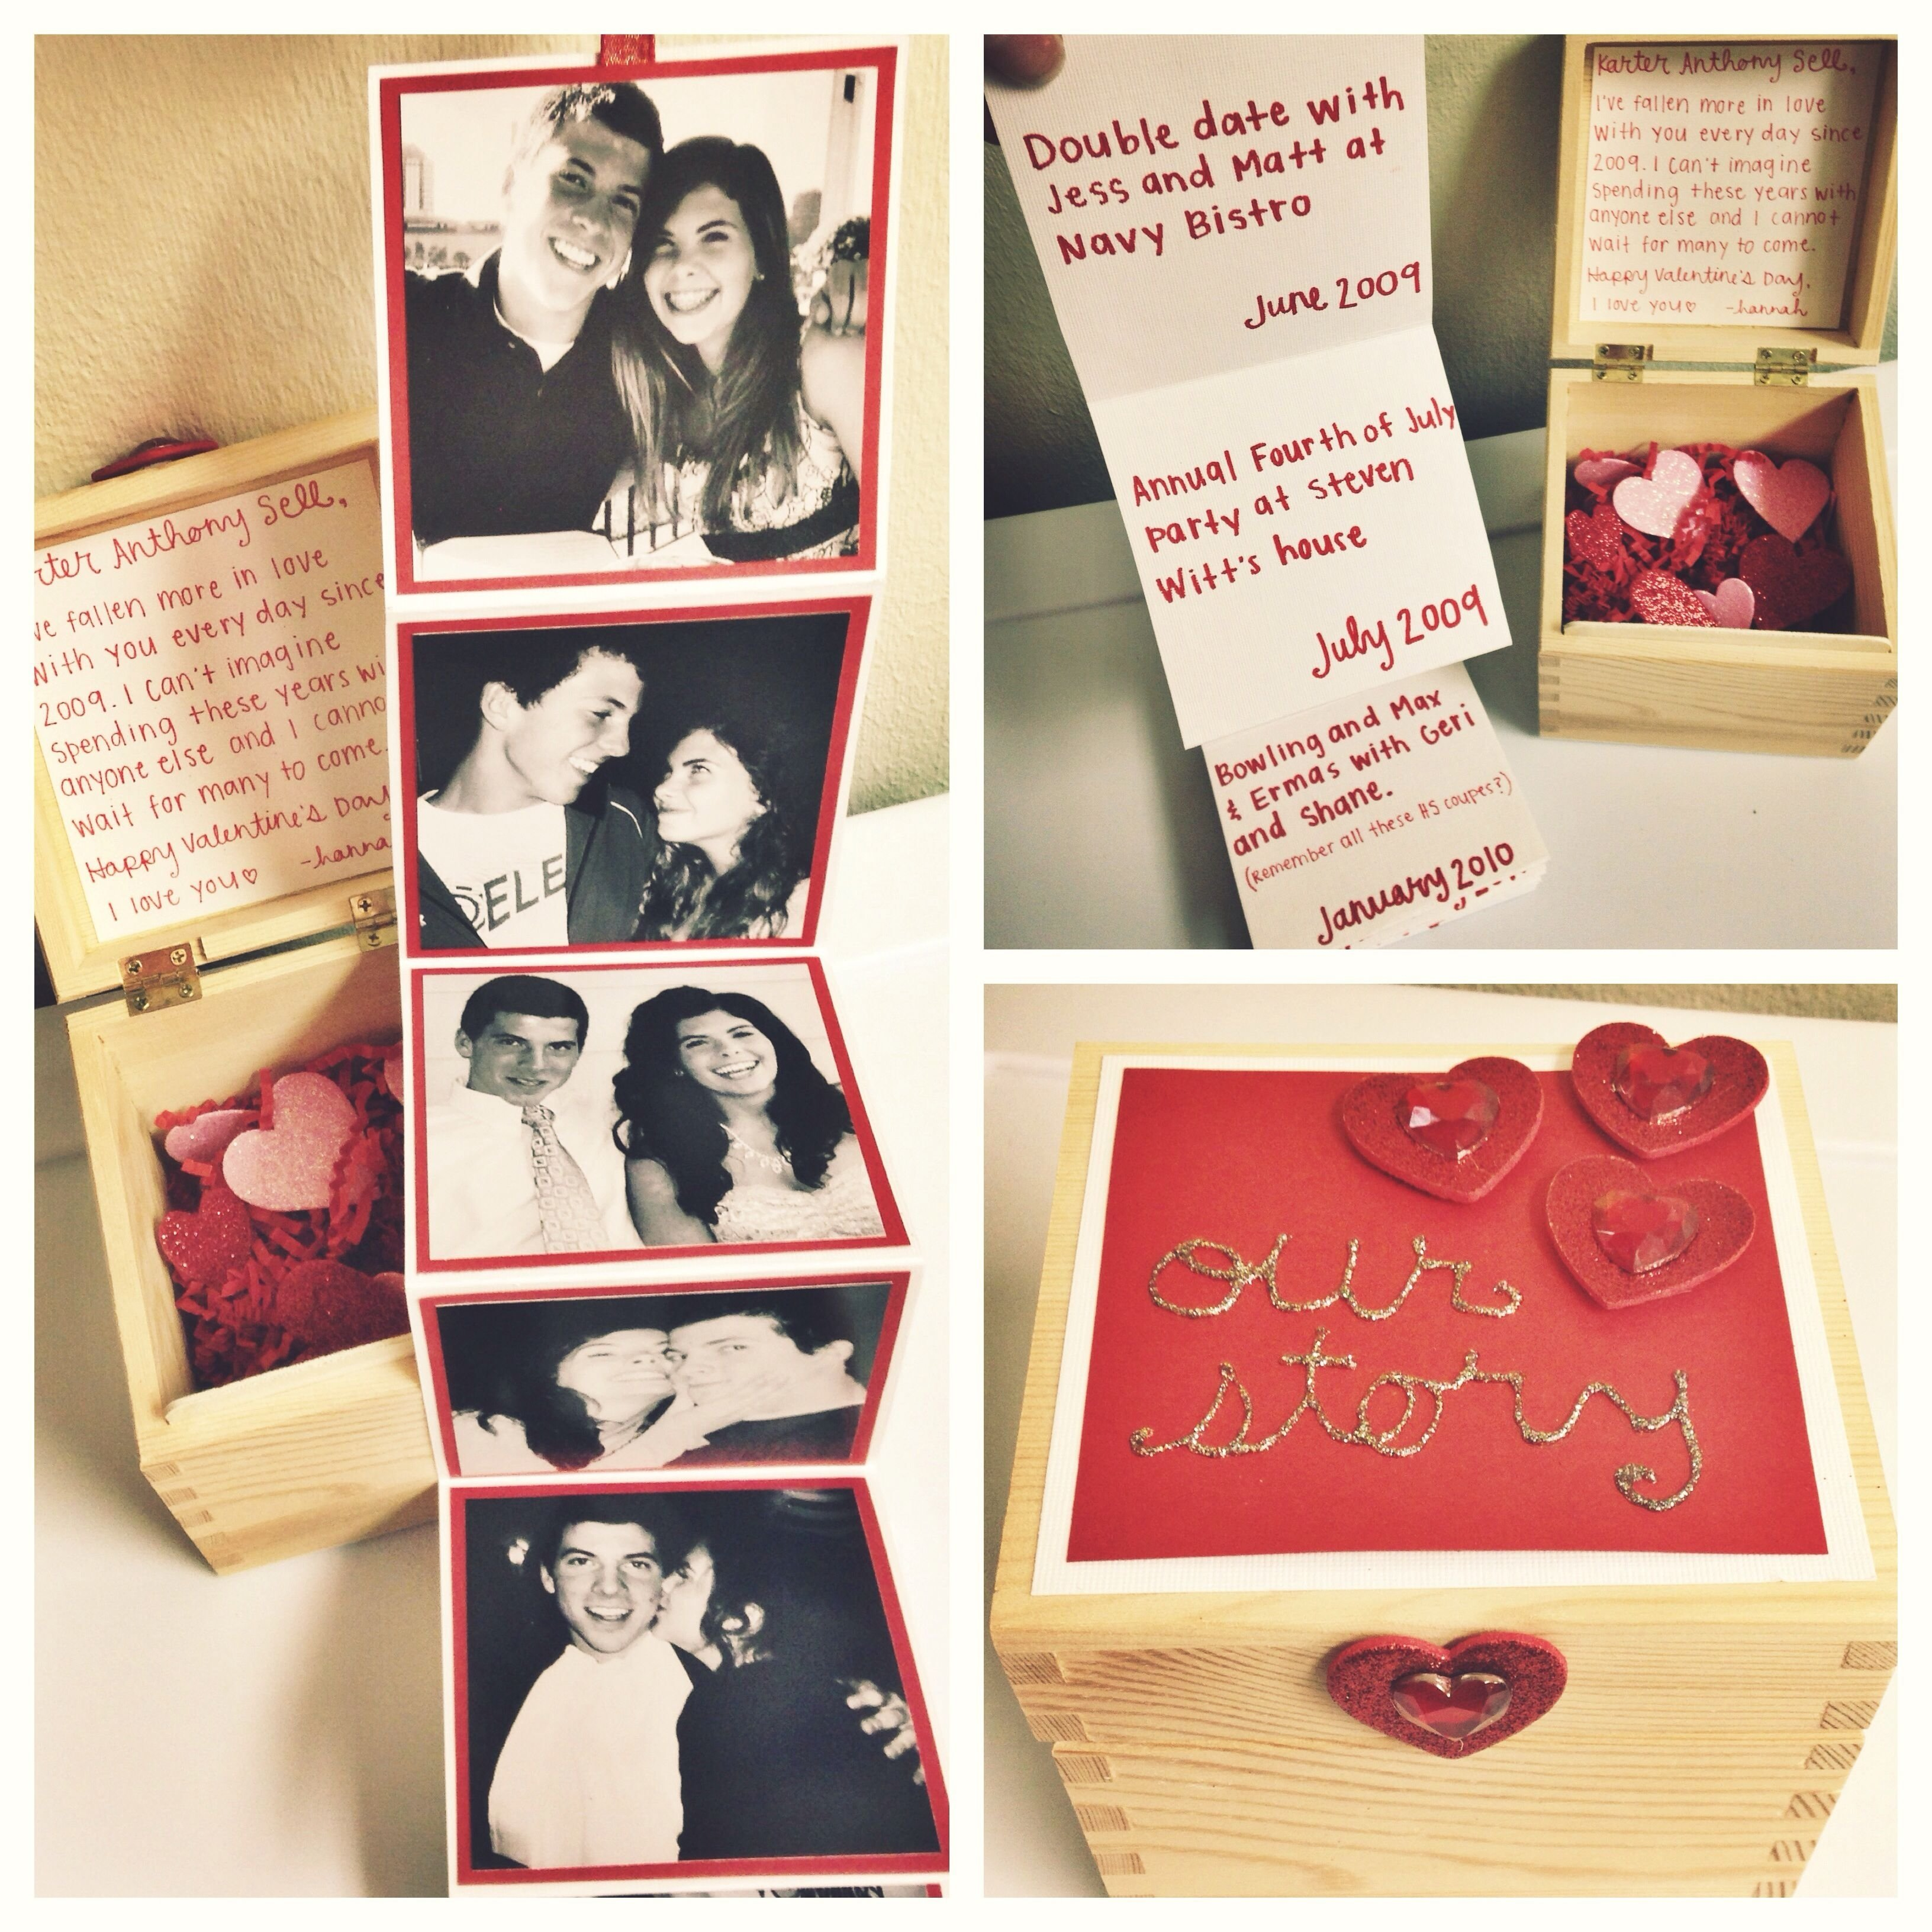 10 Awesome Homemade Christmas Ideas For Boyfriend 55 diy valentine gifts for him boyfriends anniversaries and timeline 1 2021